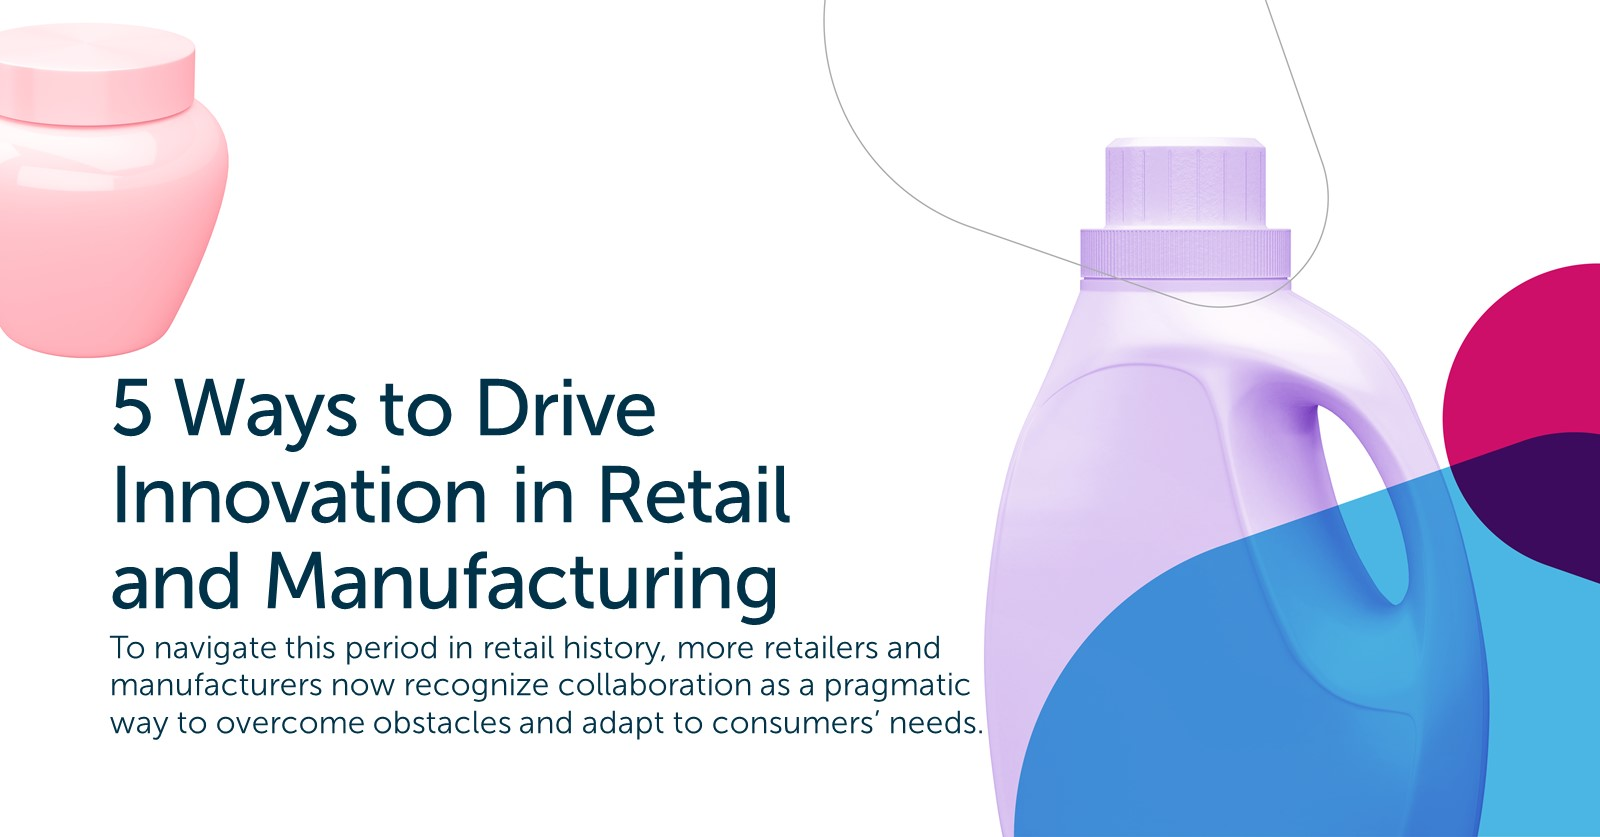 5 Ways to Drive Innovation in Retail and Manufacturing